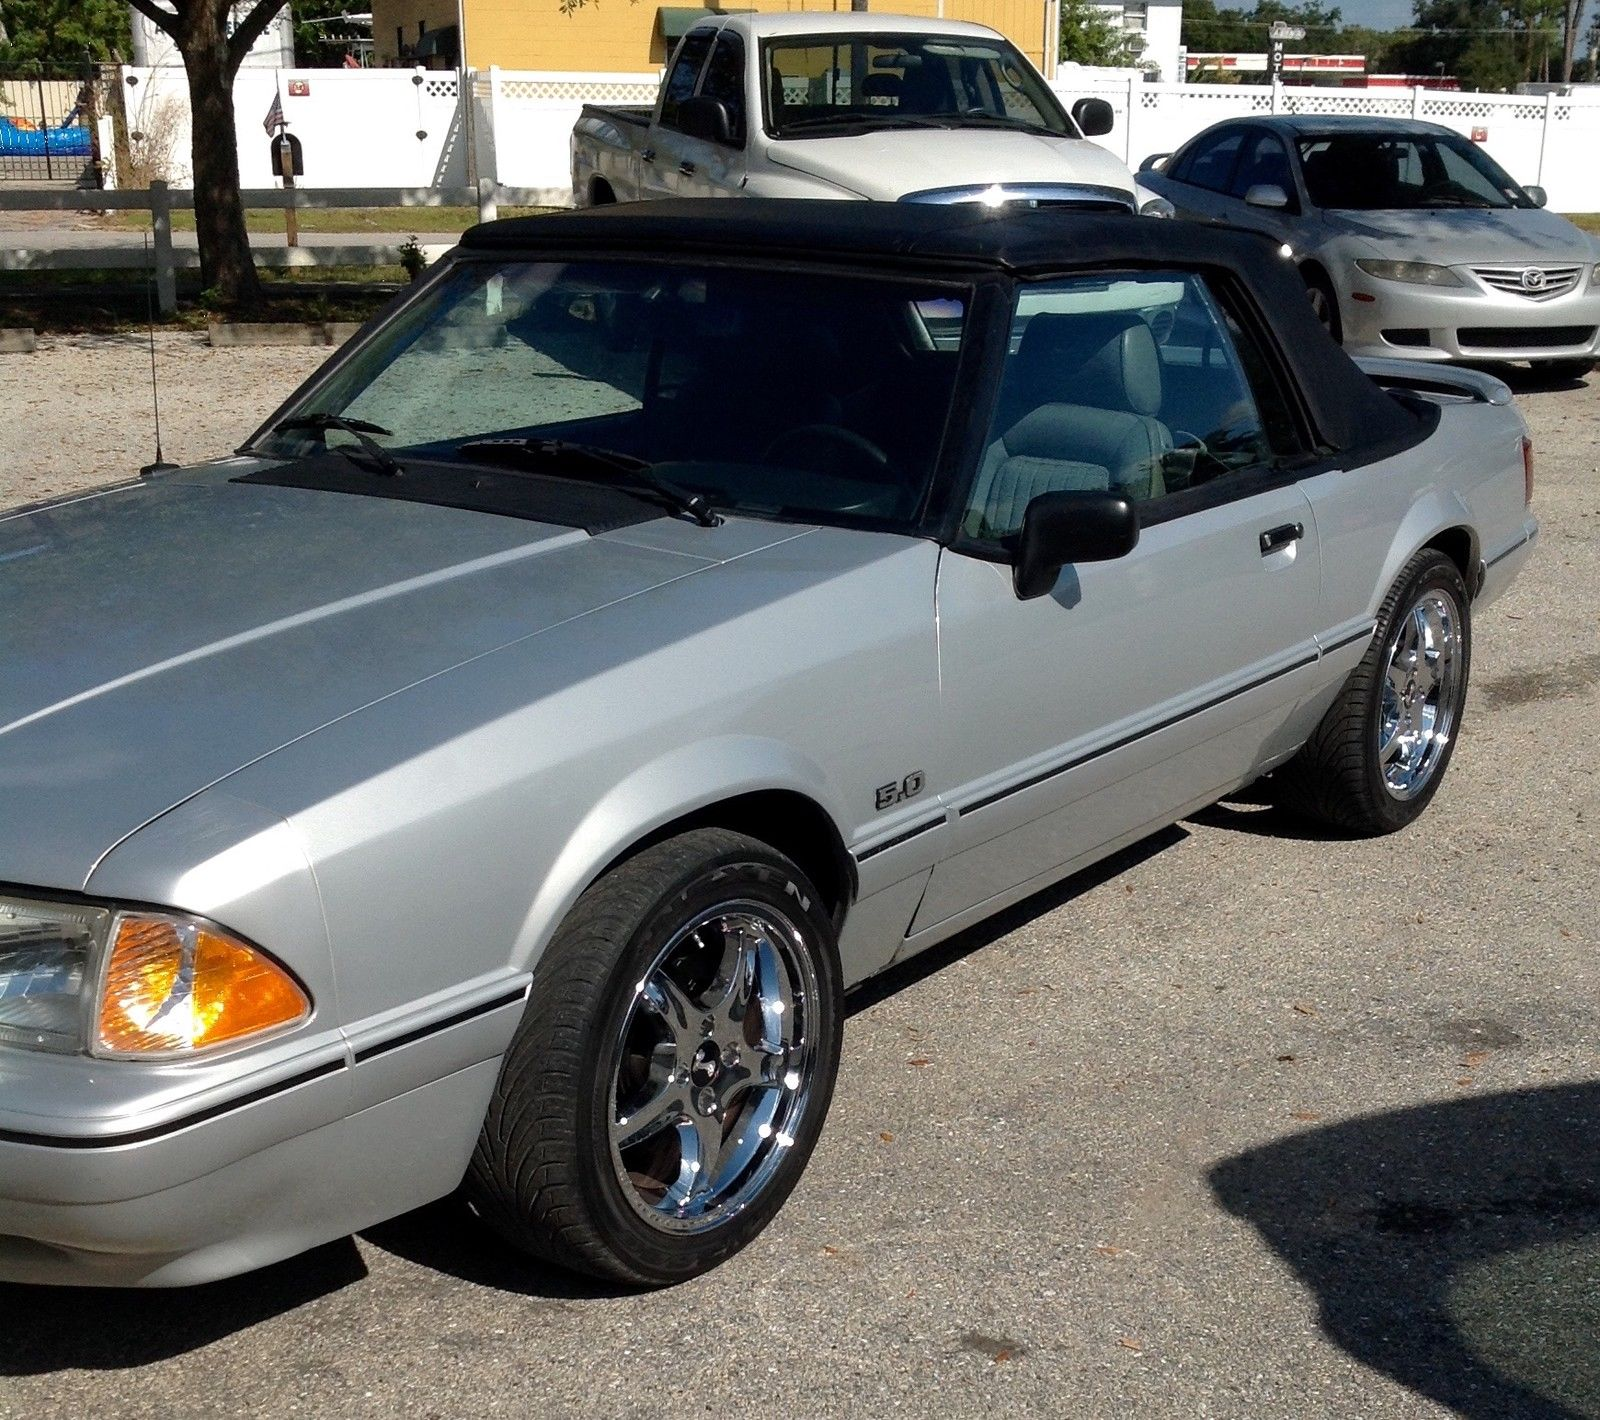 1989 Ford Mustang Lx Convertible 2 Door 5 0l V8 25th